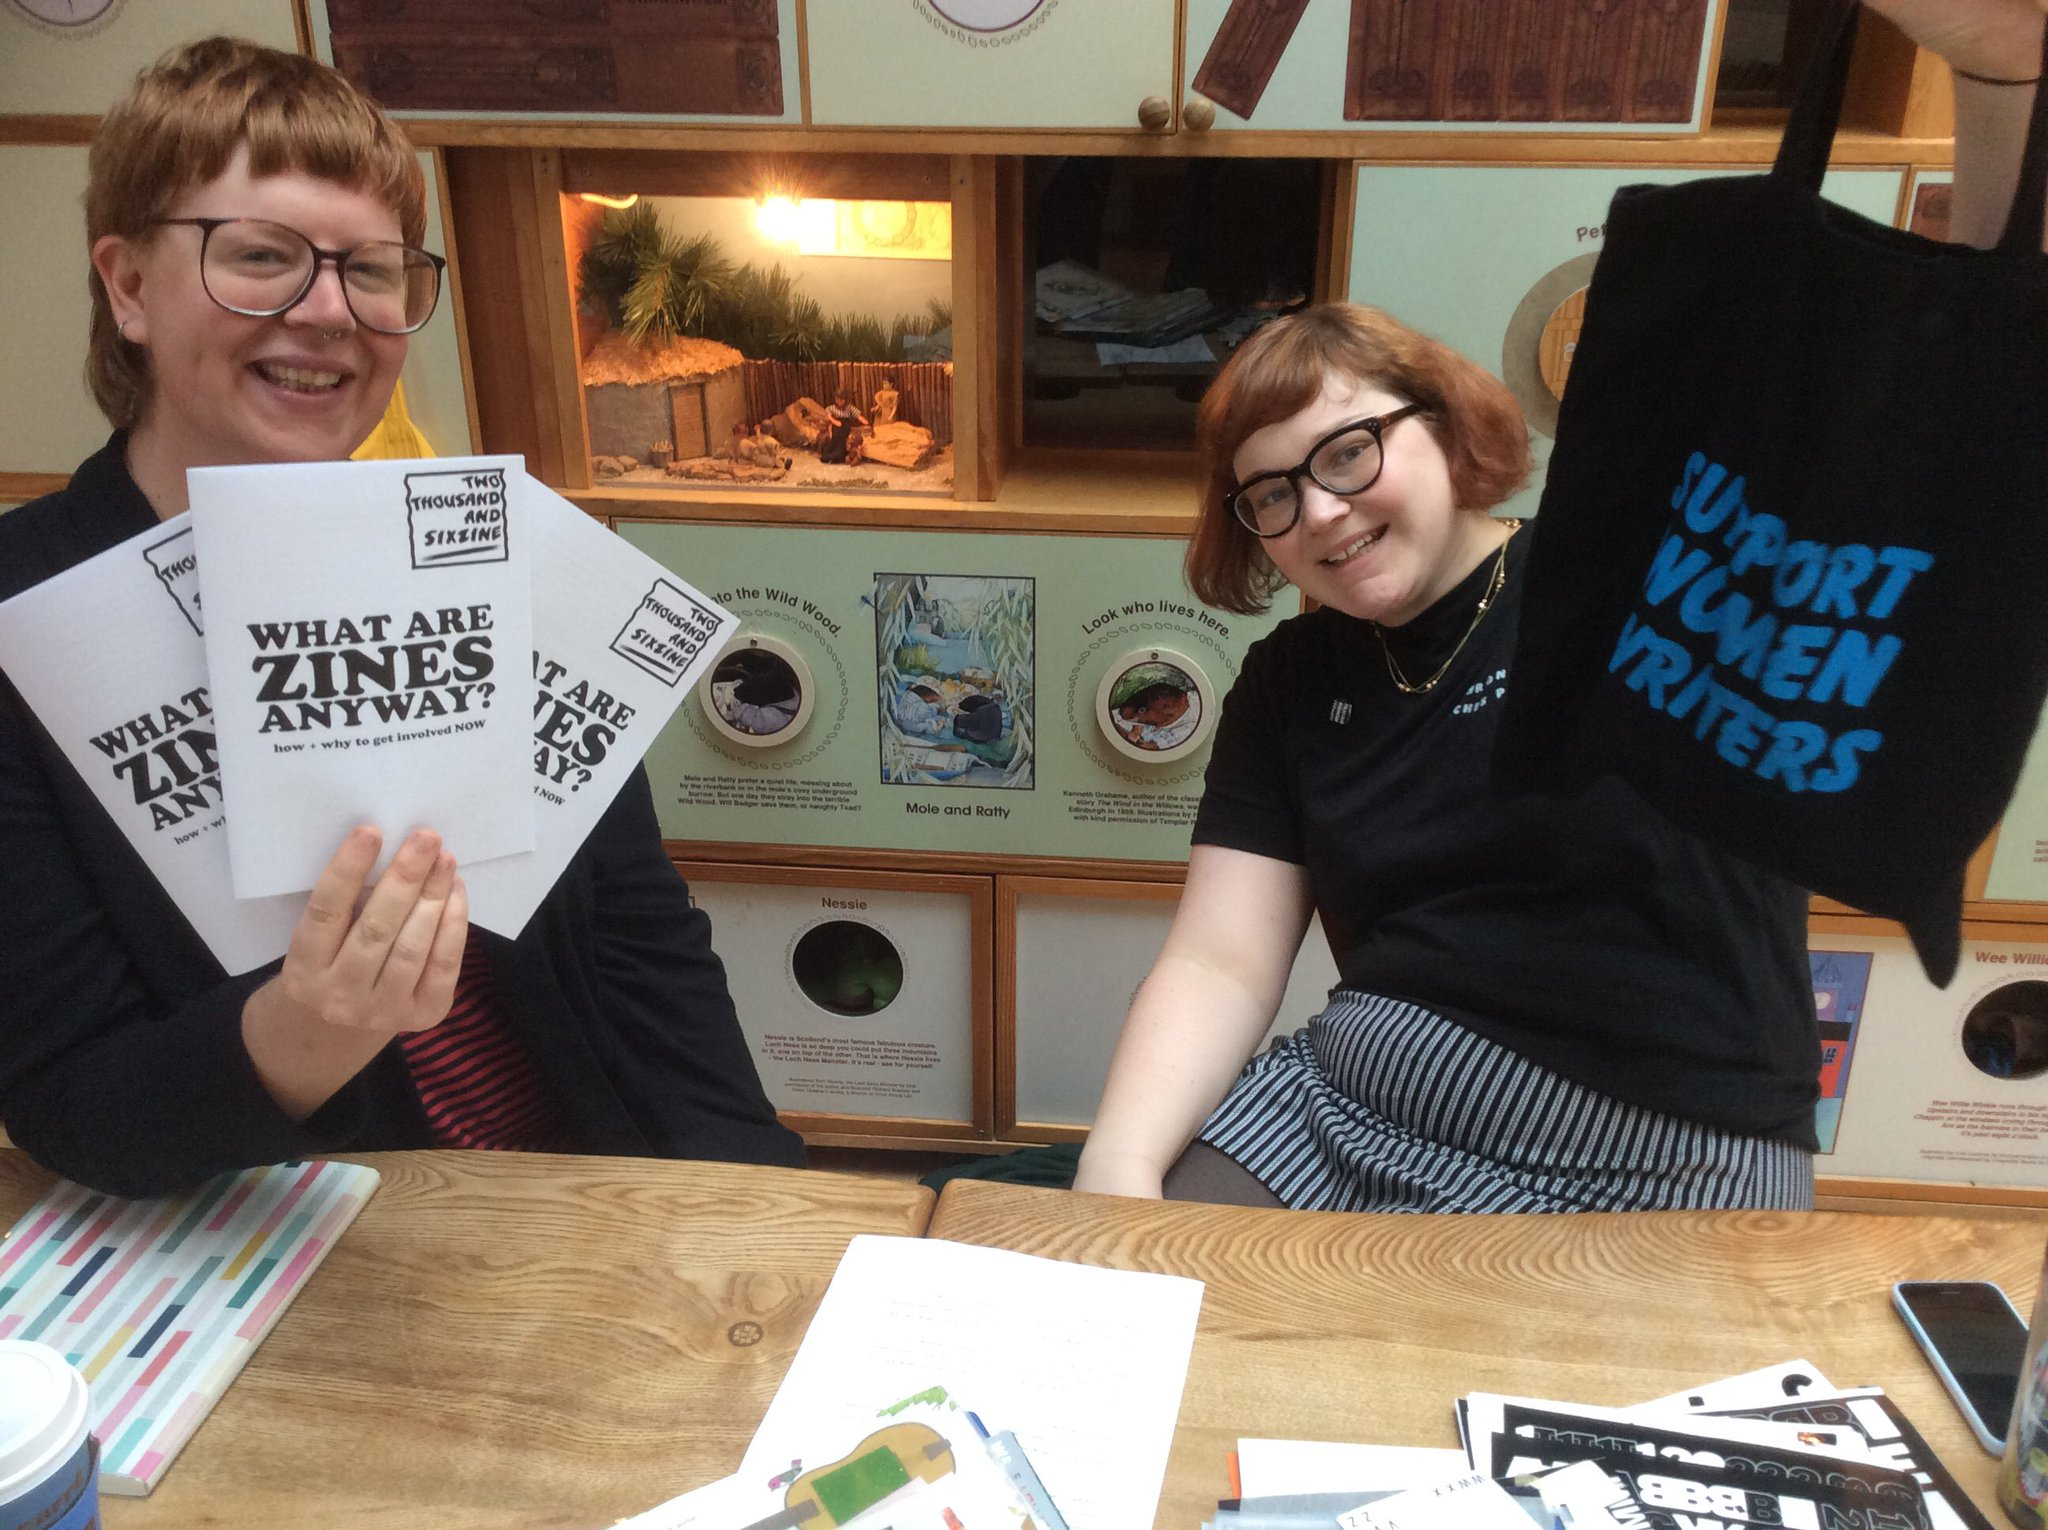 The lovely @cherry_styles & @ingridboring setting up for #Grrrlcon @thechapesszine https://t.co/Z8XaodN9No